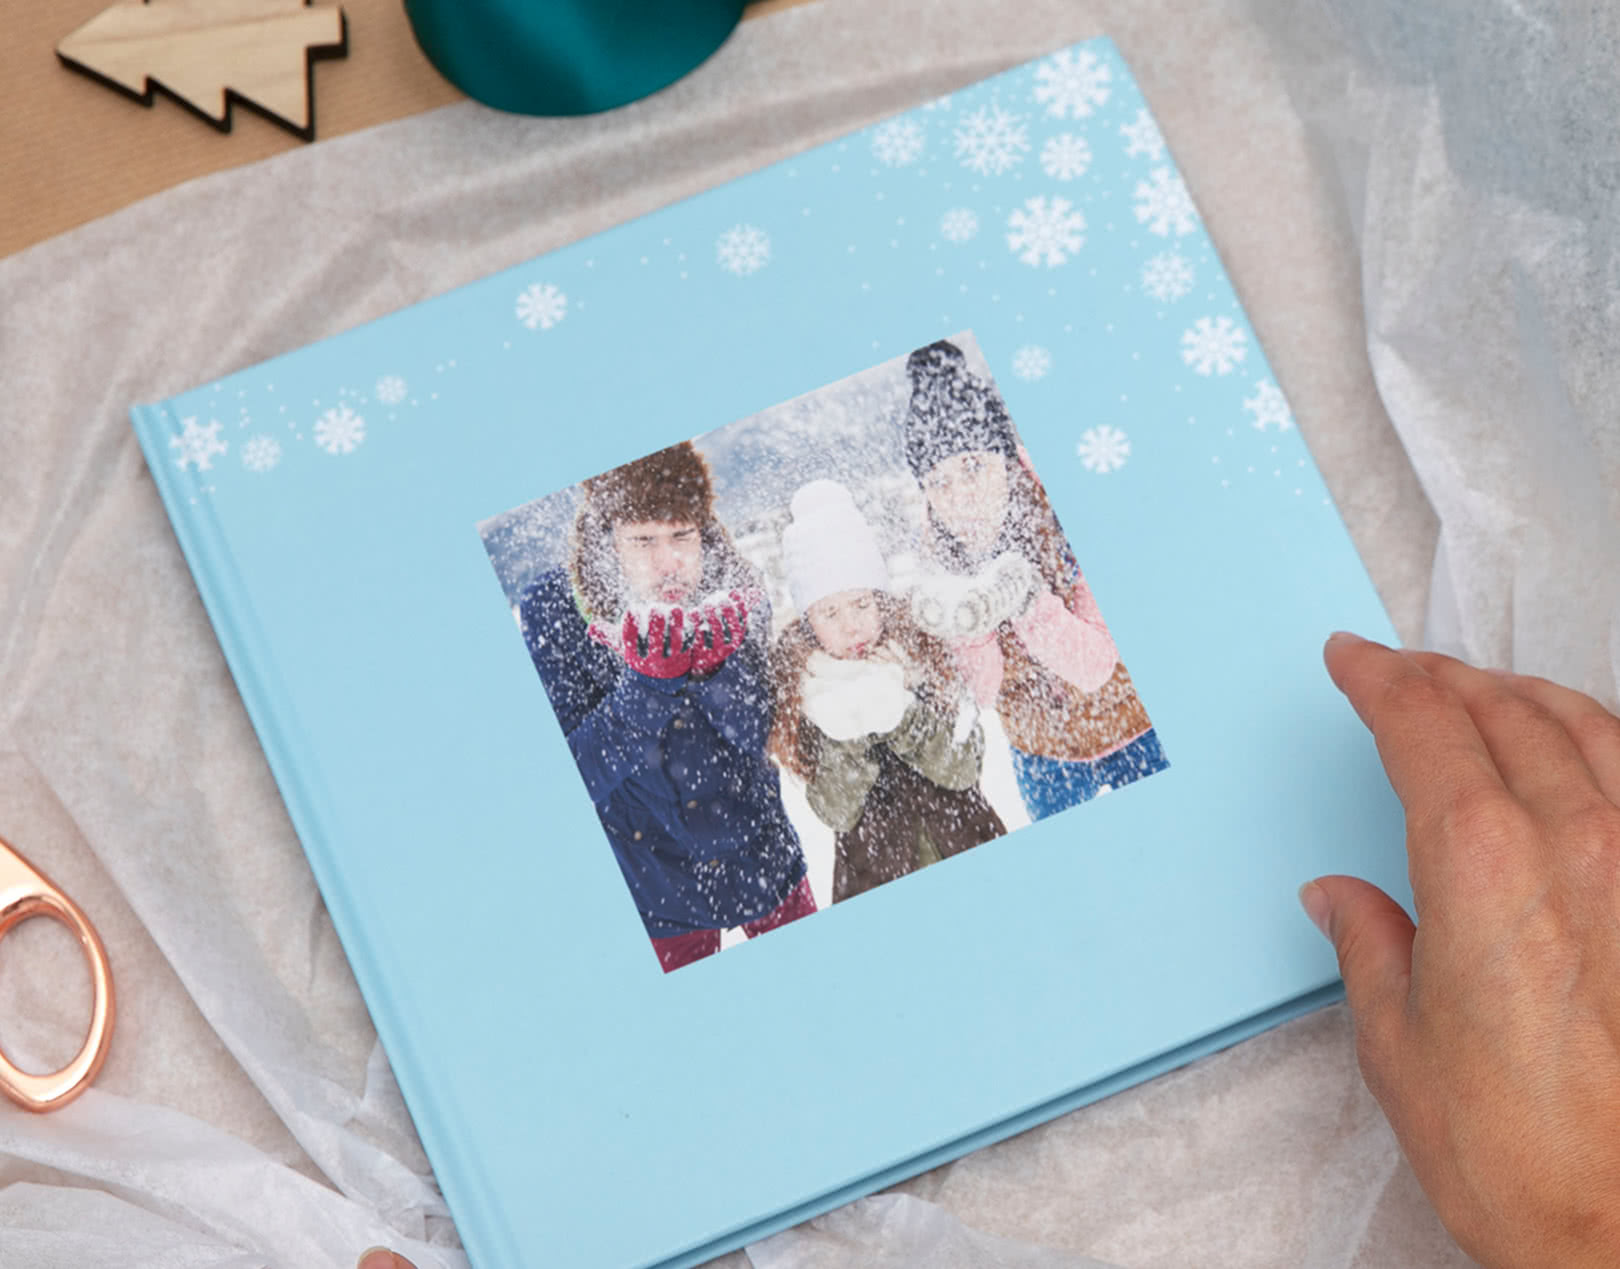 Standard Hardcover Square Photo Books